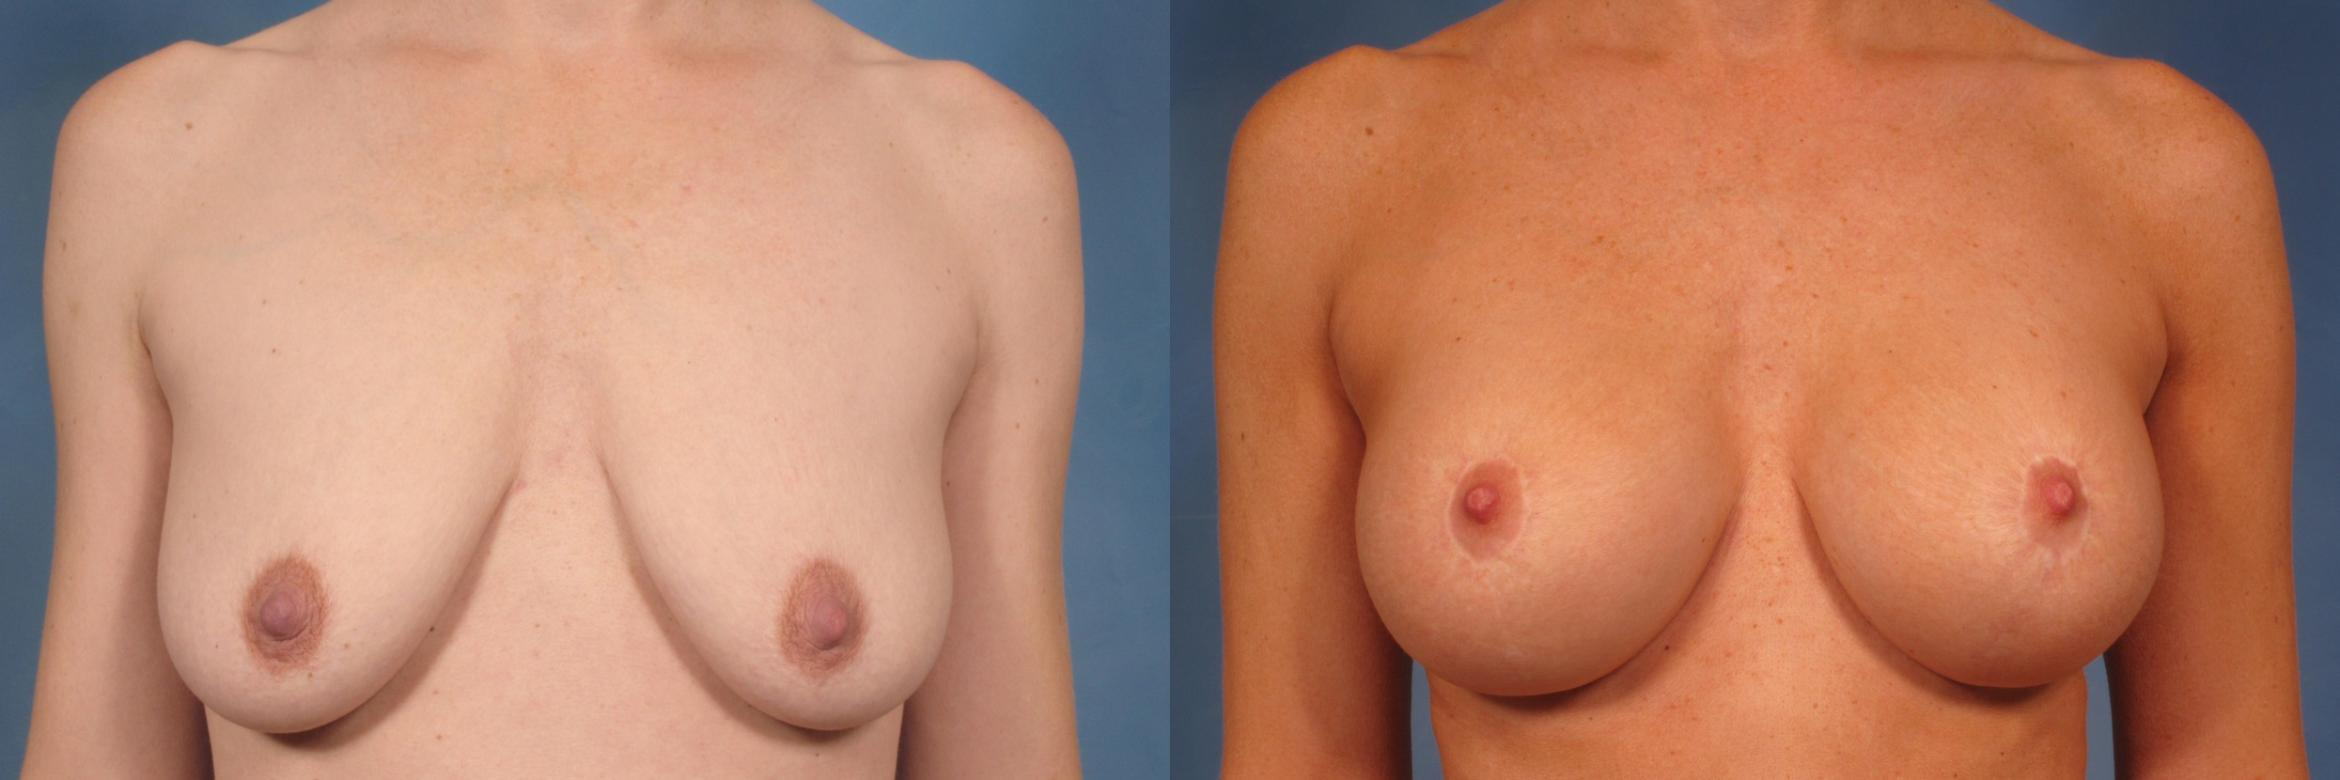 Breast Augmentation with Lift Case 135 Before & After View #1 | Naples, FL | Kent V. Hasen, M.D.